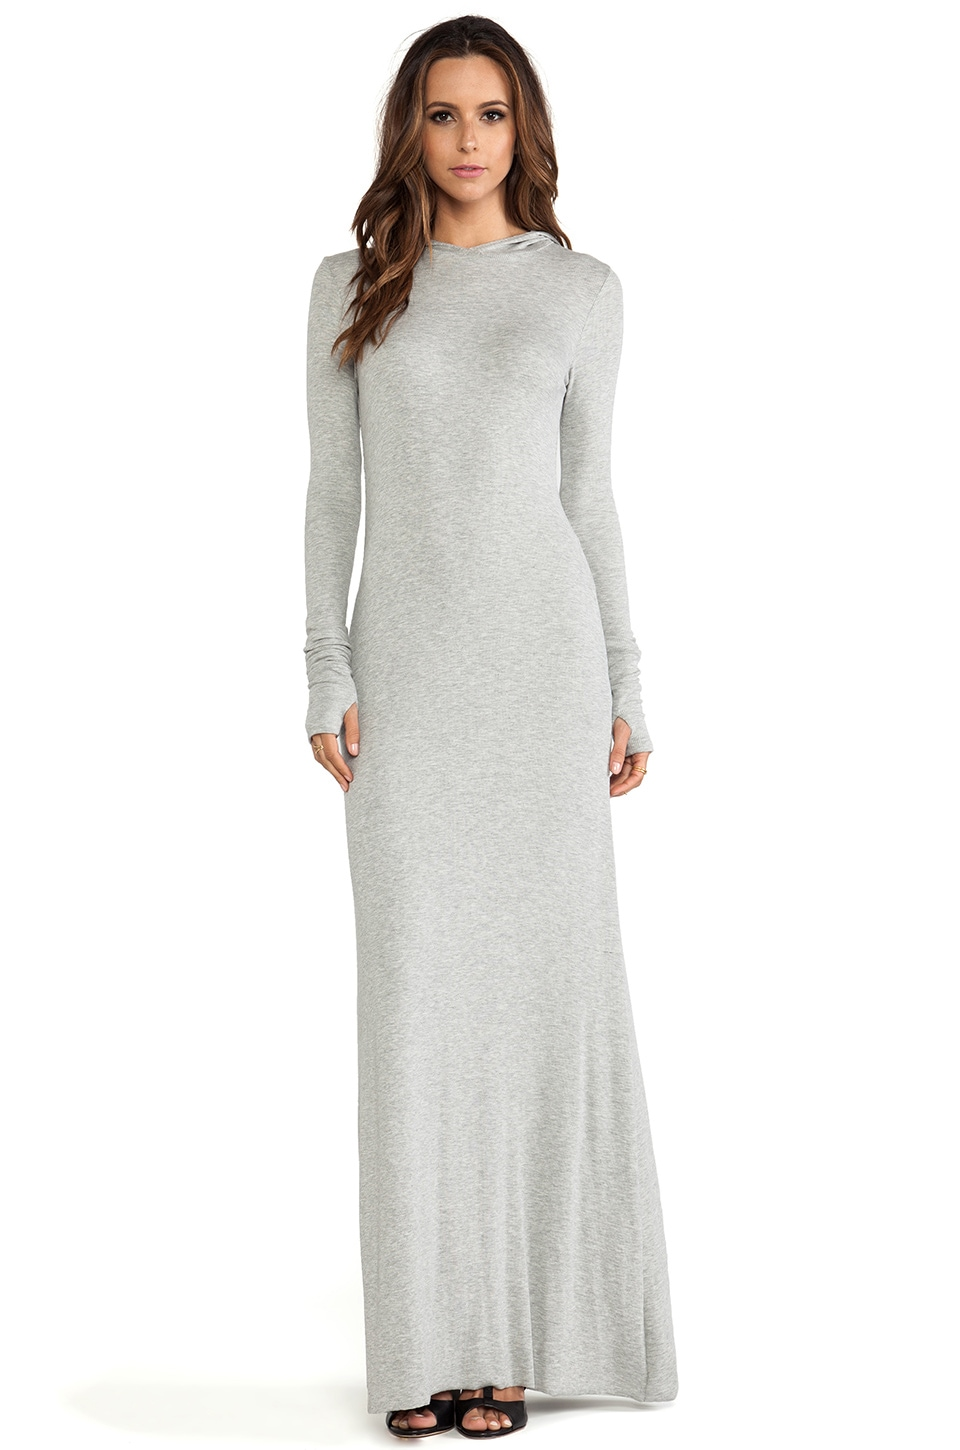 sen Romina Dress in Heather Grey